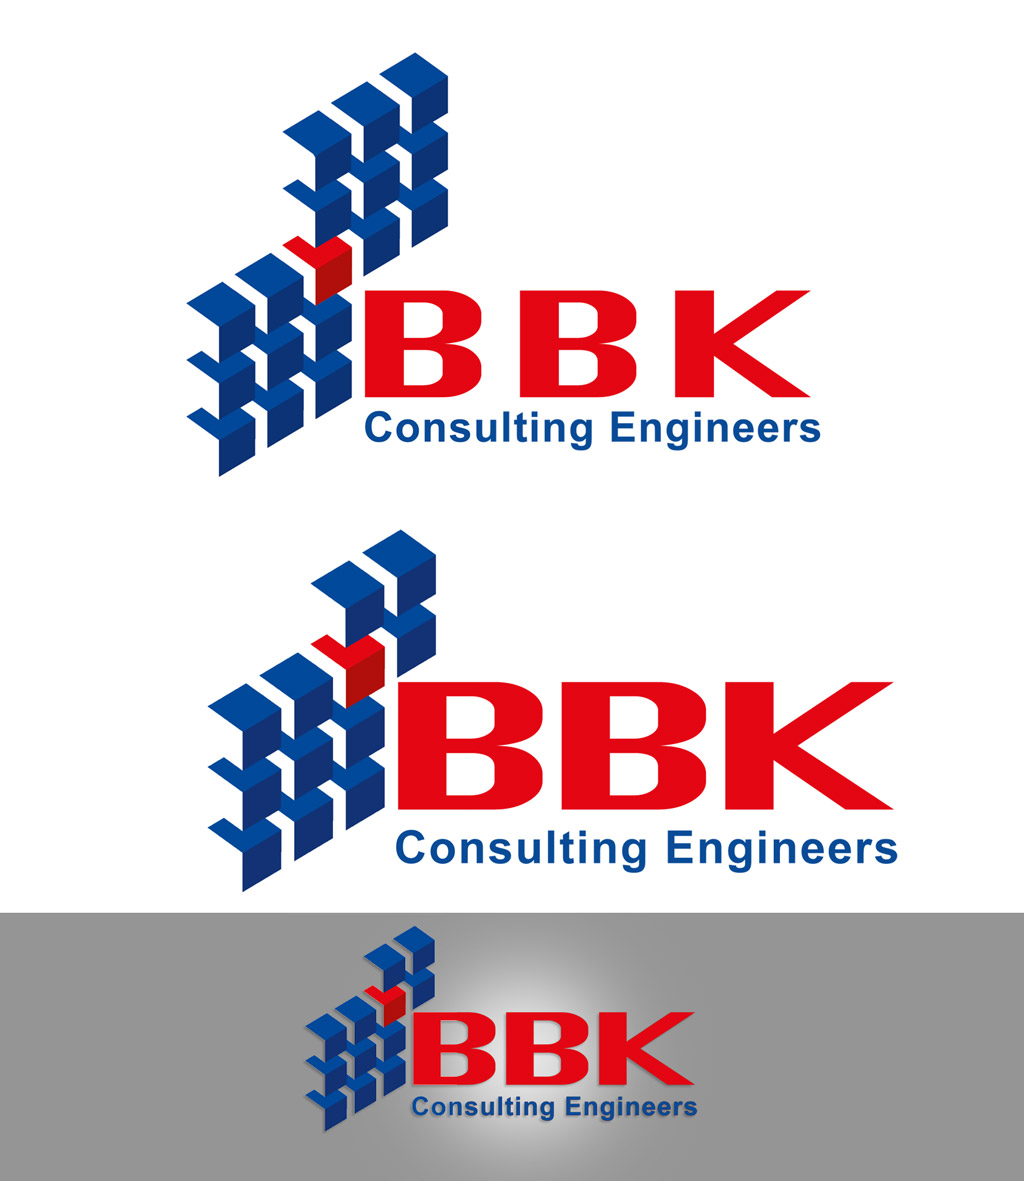 Logo Design by Afshin Sadeghi - Entry No. 89 in the Logo Design Contest Logo Design Needed for Exciting New Company BBK Consulting Engineers.